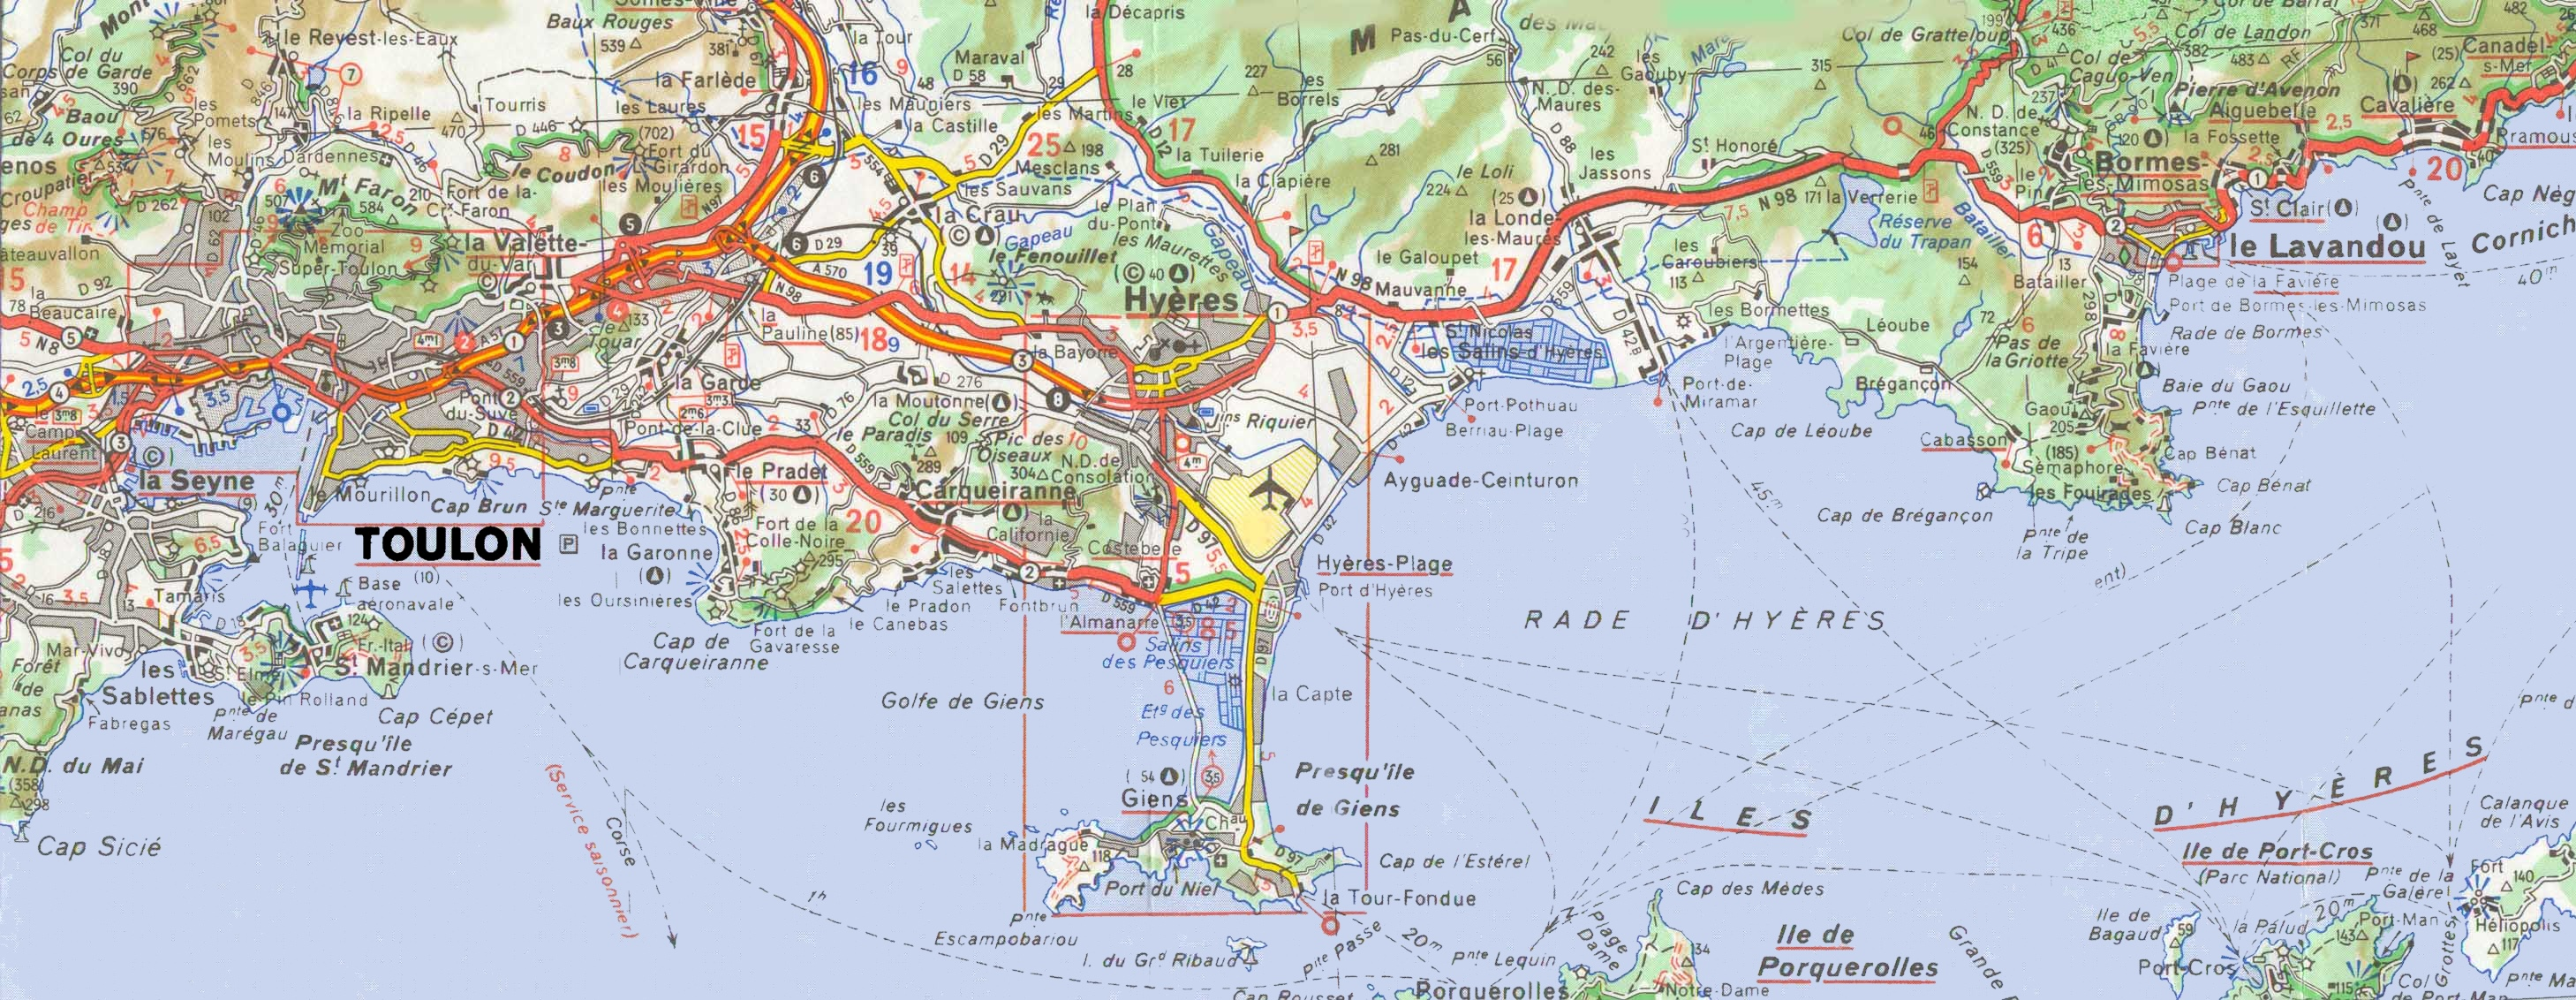 Toulon Maps France – Toulon Tourist Map